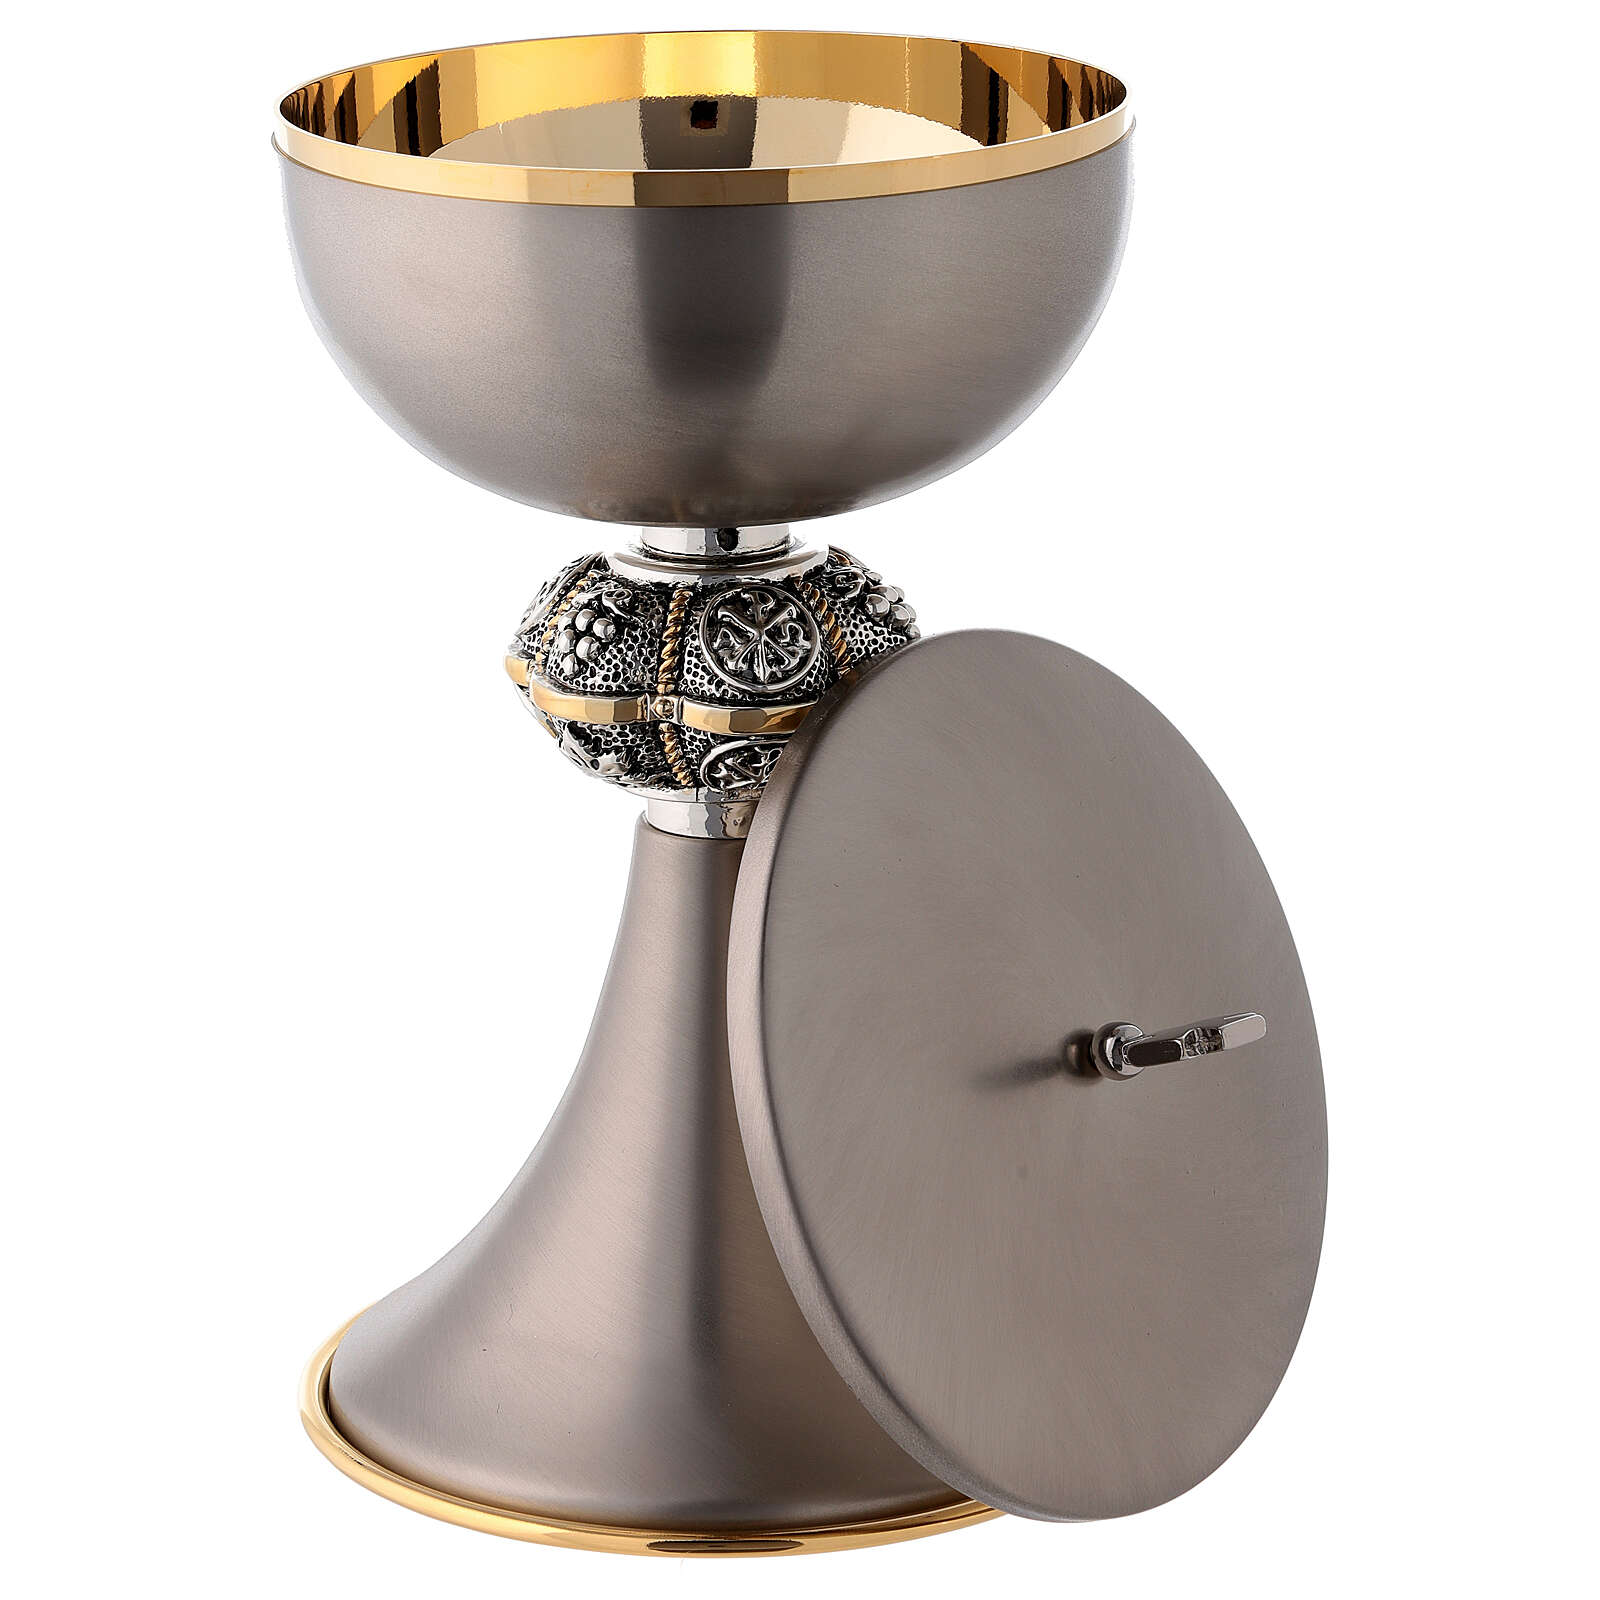 Mat gray coated chalice and ciborium made of brass 4